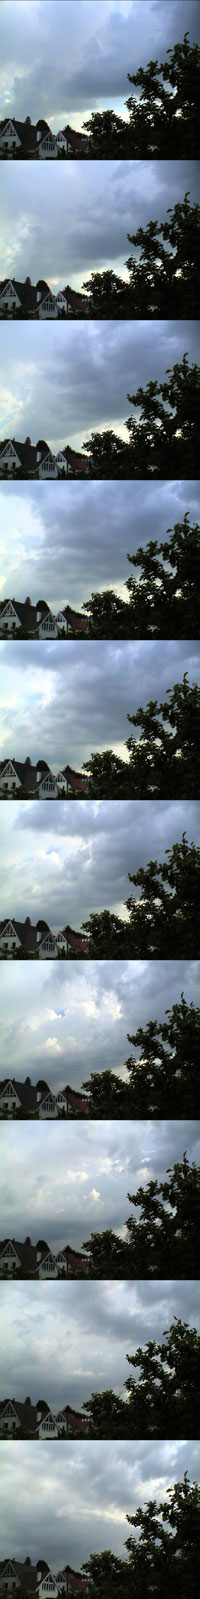 gewitter-frames.jpg